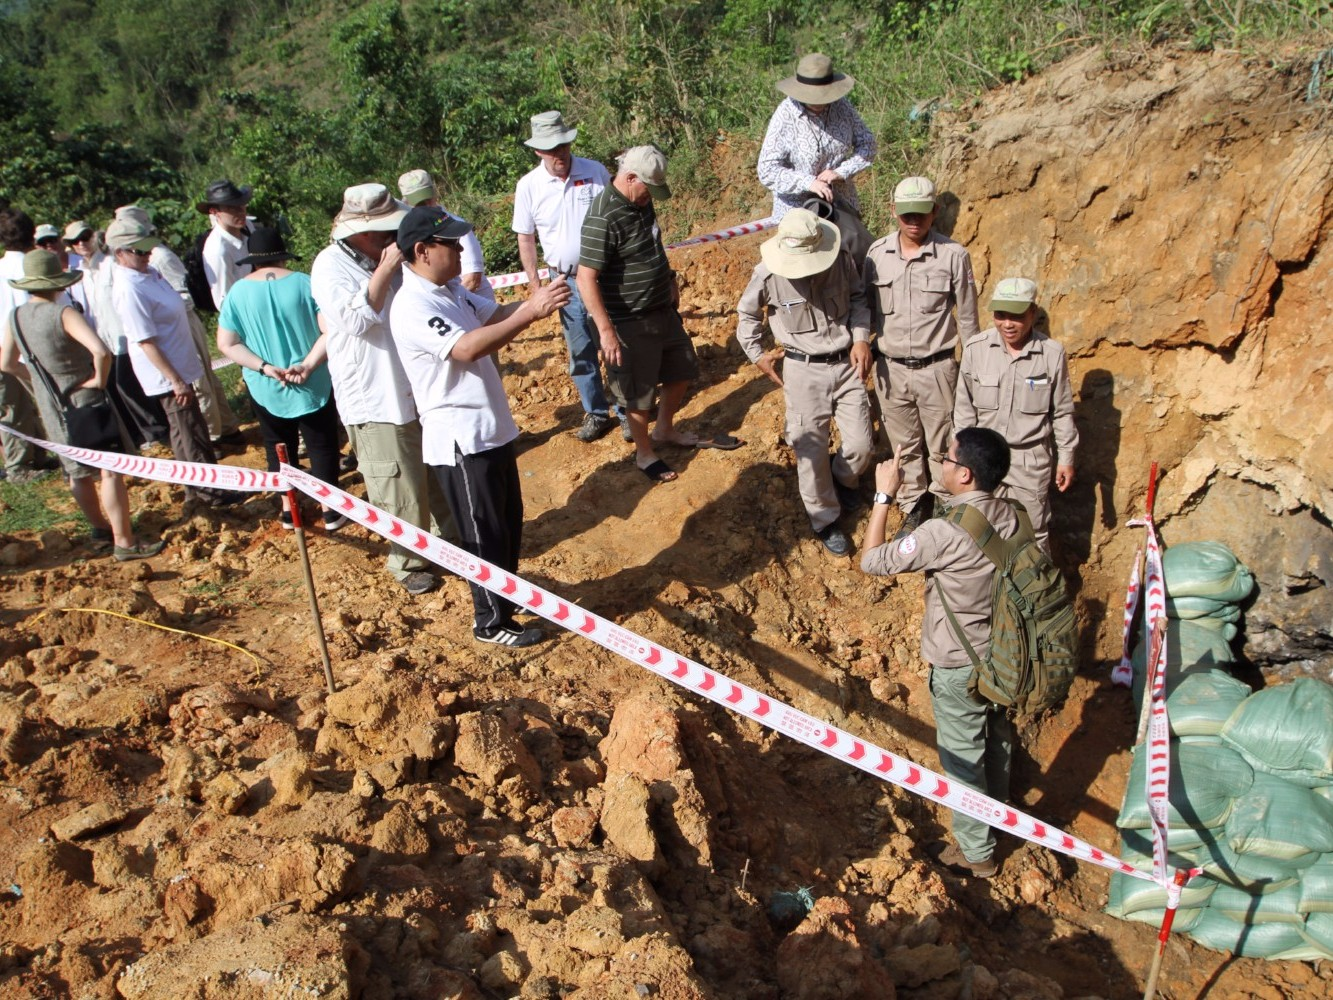 Examining UXO to be detonated